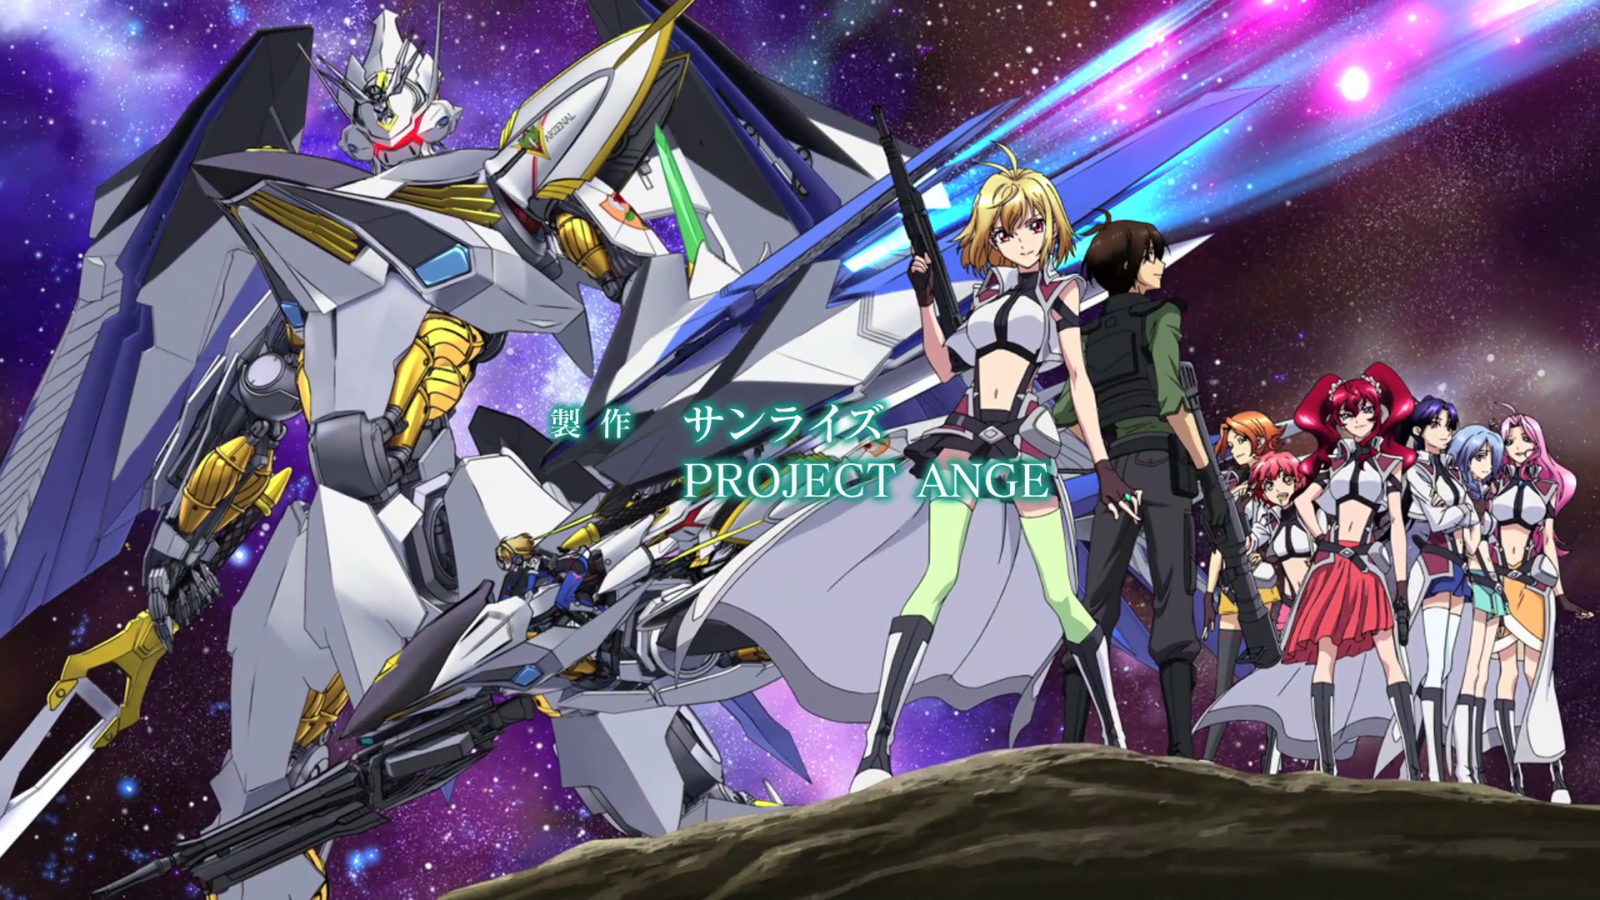 Raw Anime] Cross Ange: Tenshi to Ryuu no Rondo BD Vol.1 - Garuda-Raws